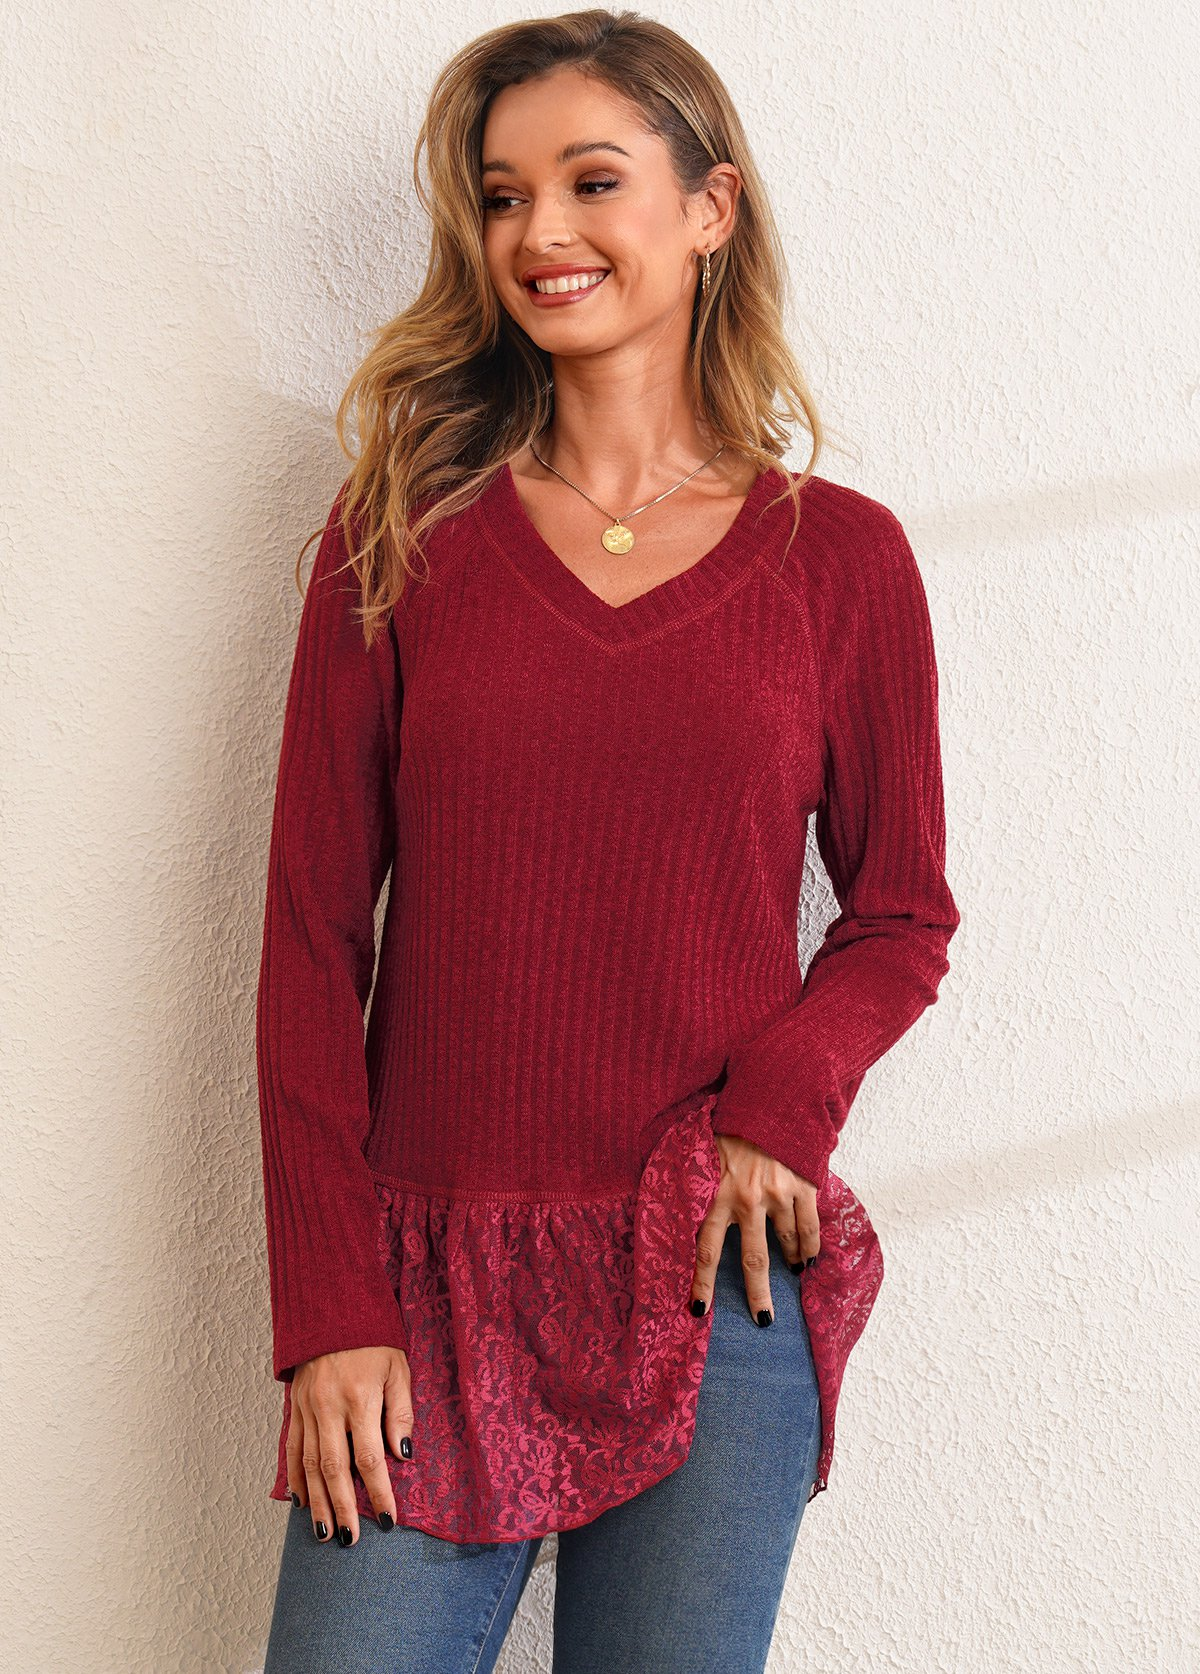 ROTITA Solid Lace Patchwork V Neck Long Sleeve T Shirt